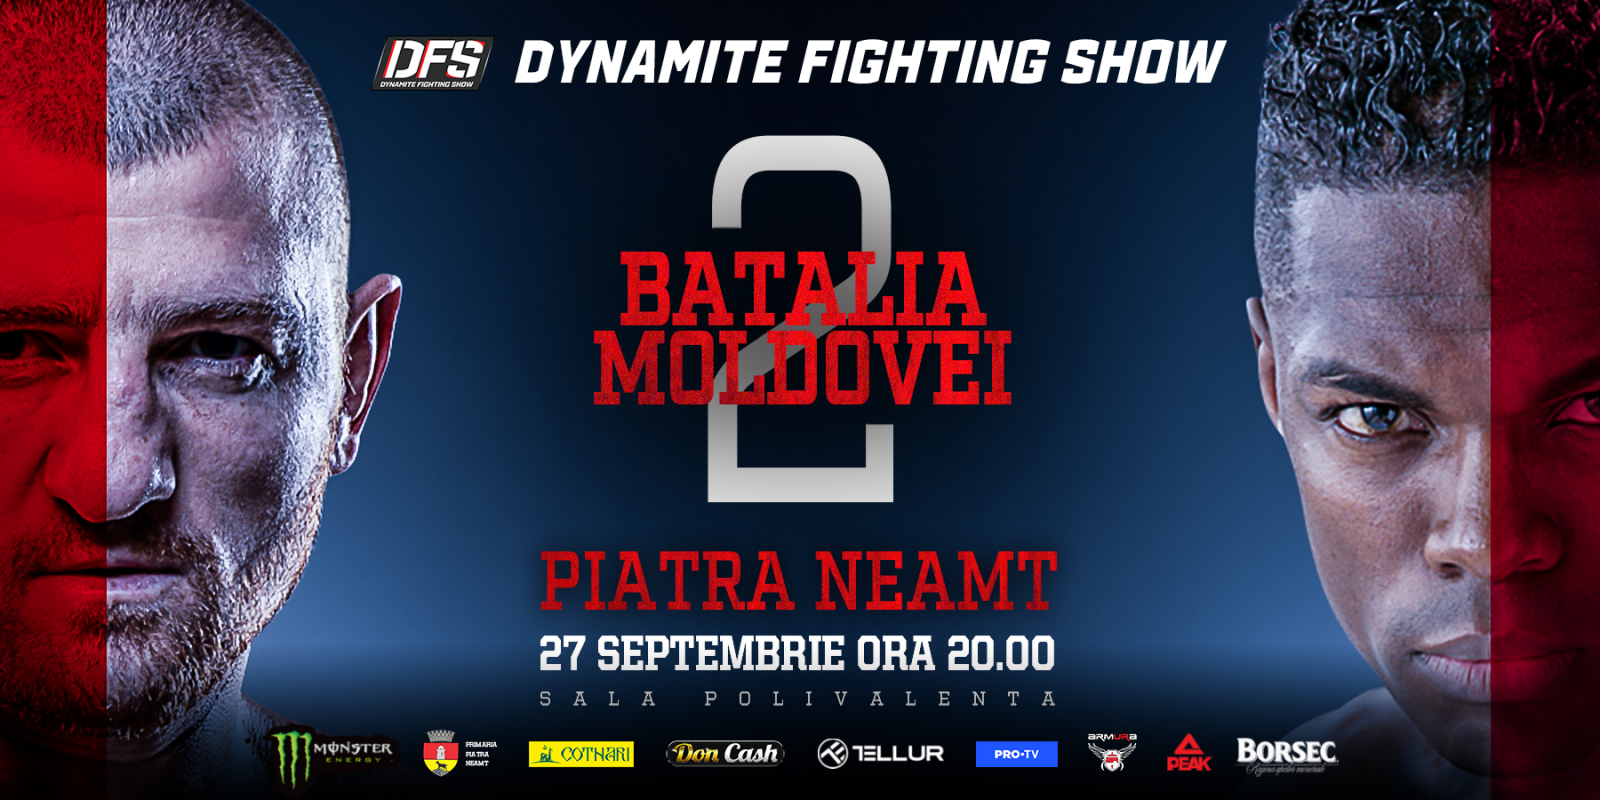 web banner for the upcoming contracted MMA event in Romanoa. Contract attached also